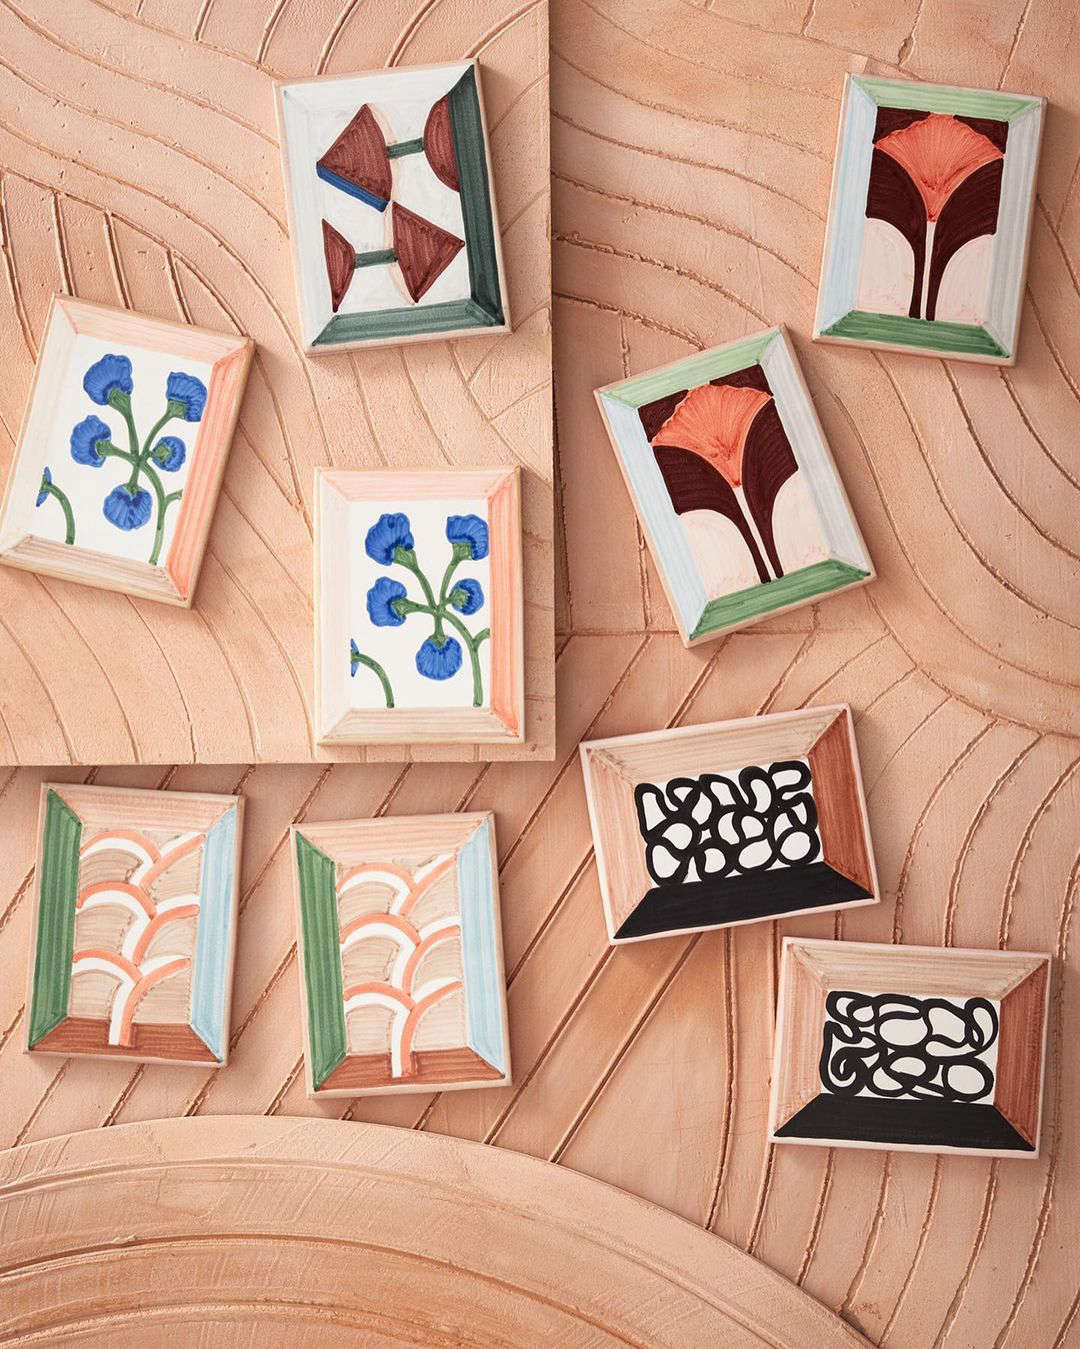 Frames incorporated into the designs make the tiles look like canvases. &#8